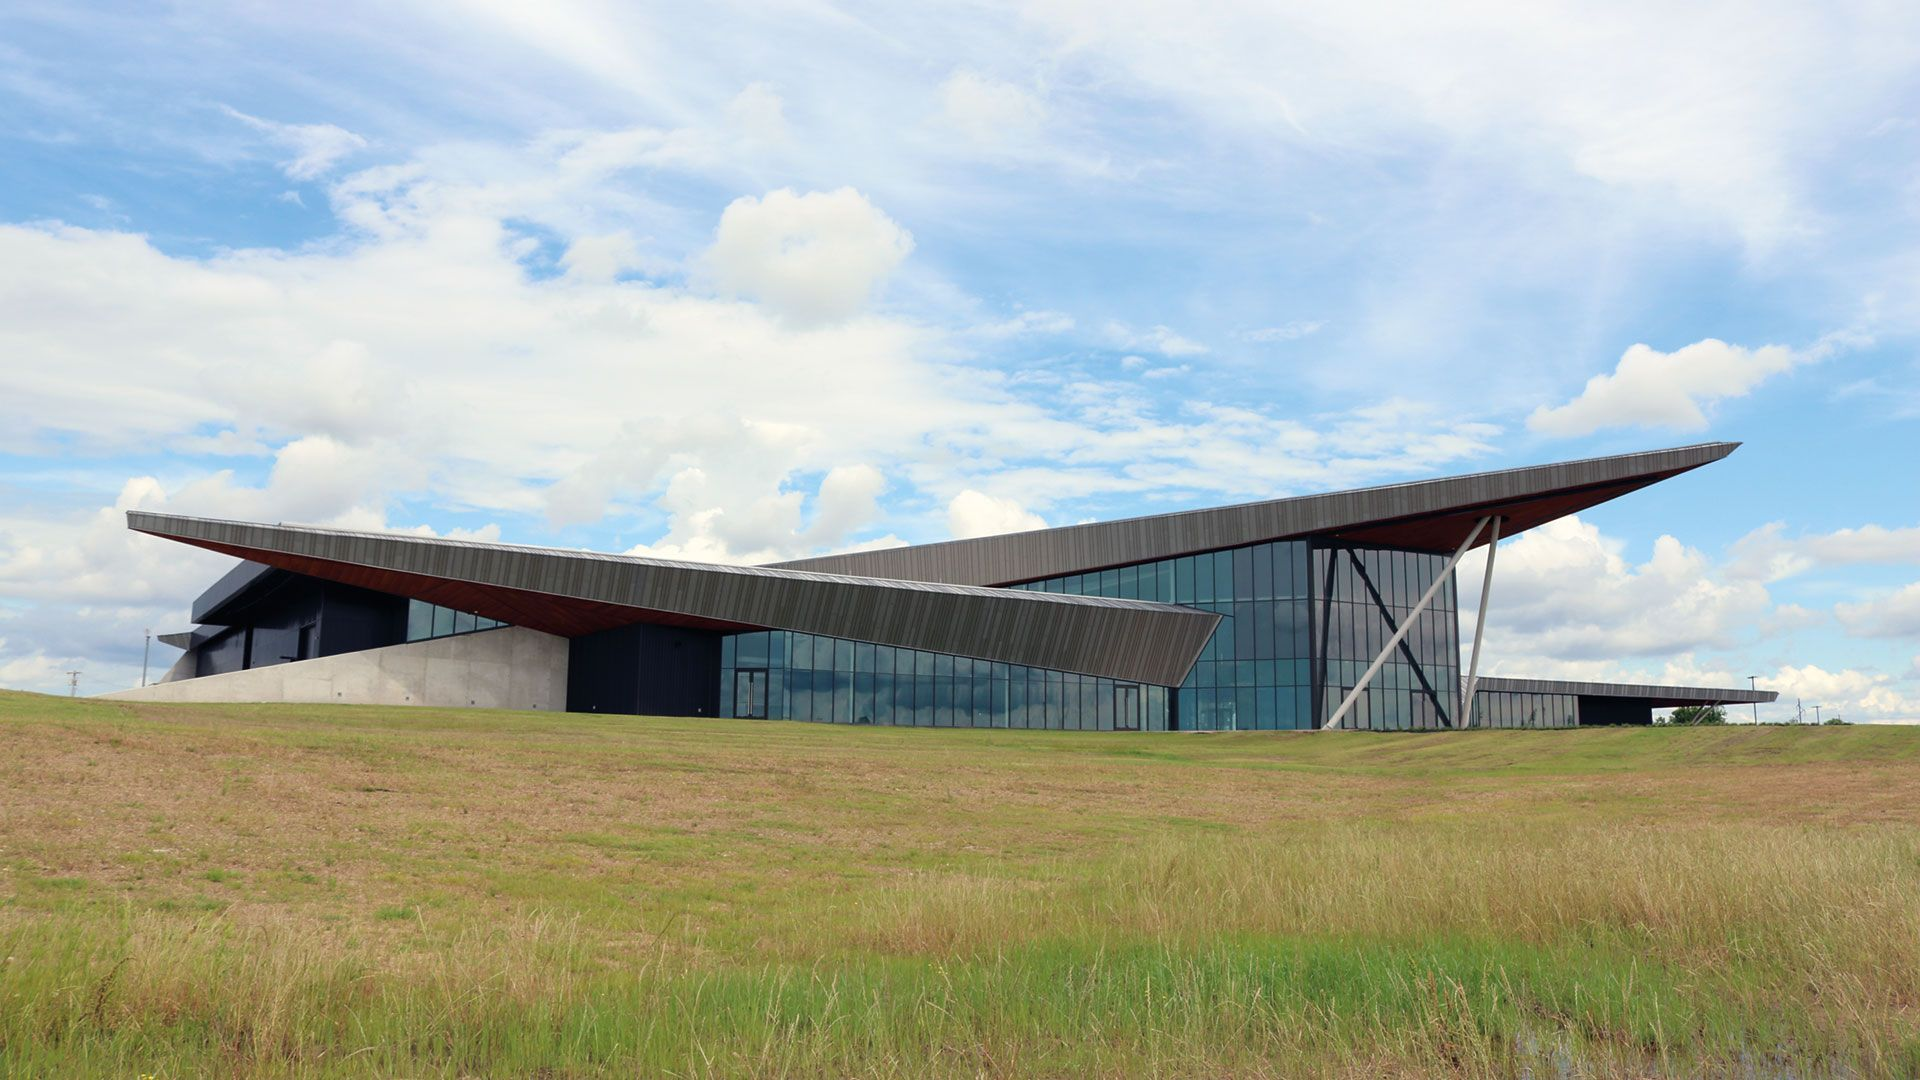 US Marshals Museum pushes ahead